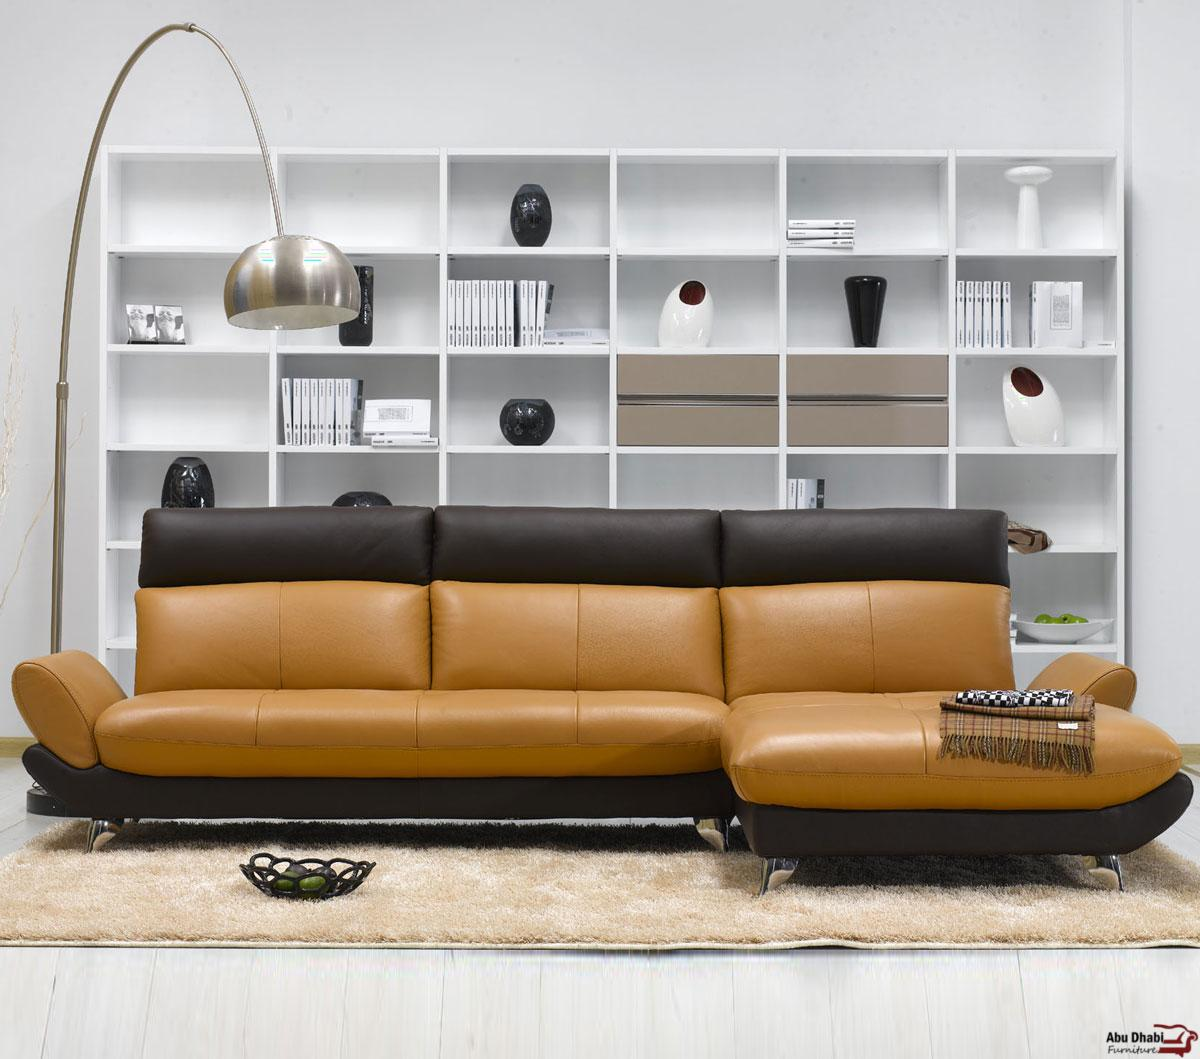 Custom Made Sofas & Couches